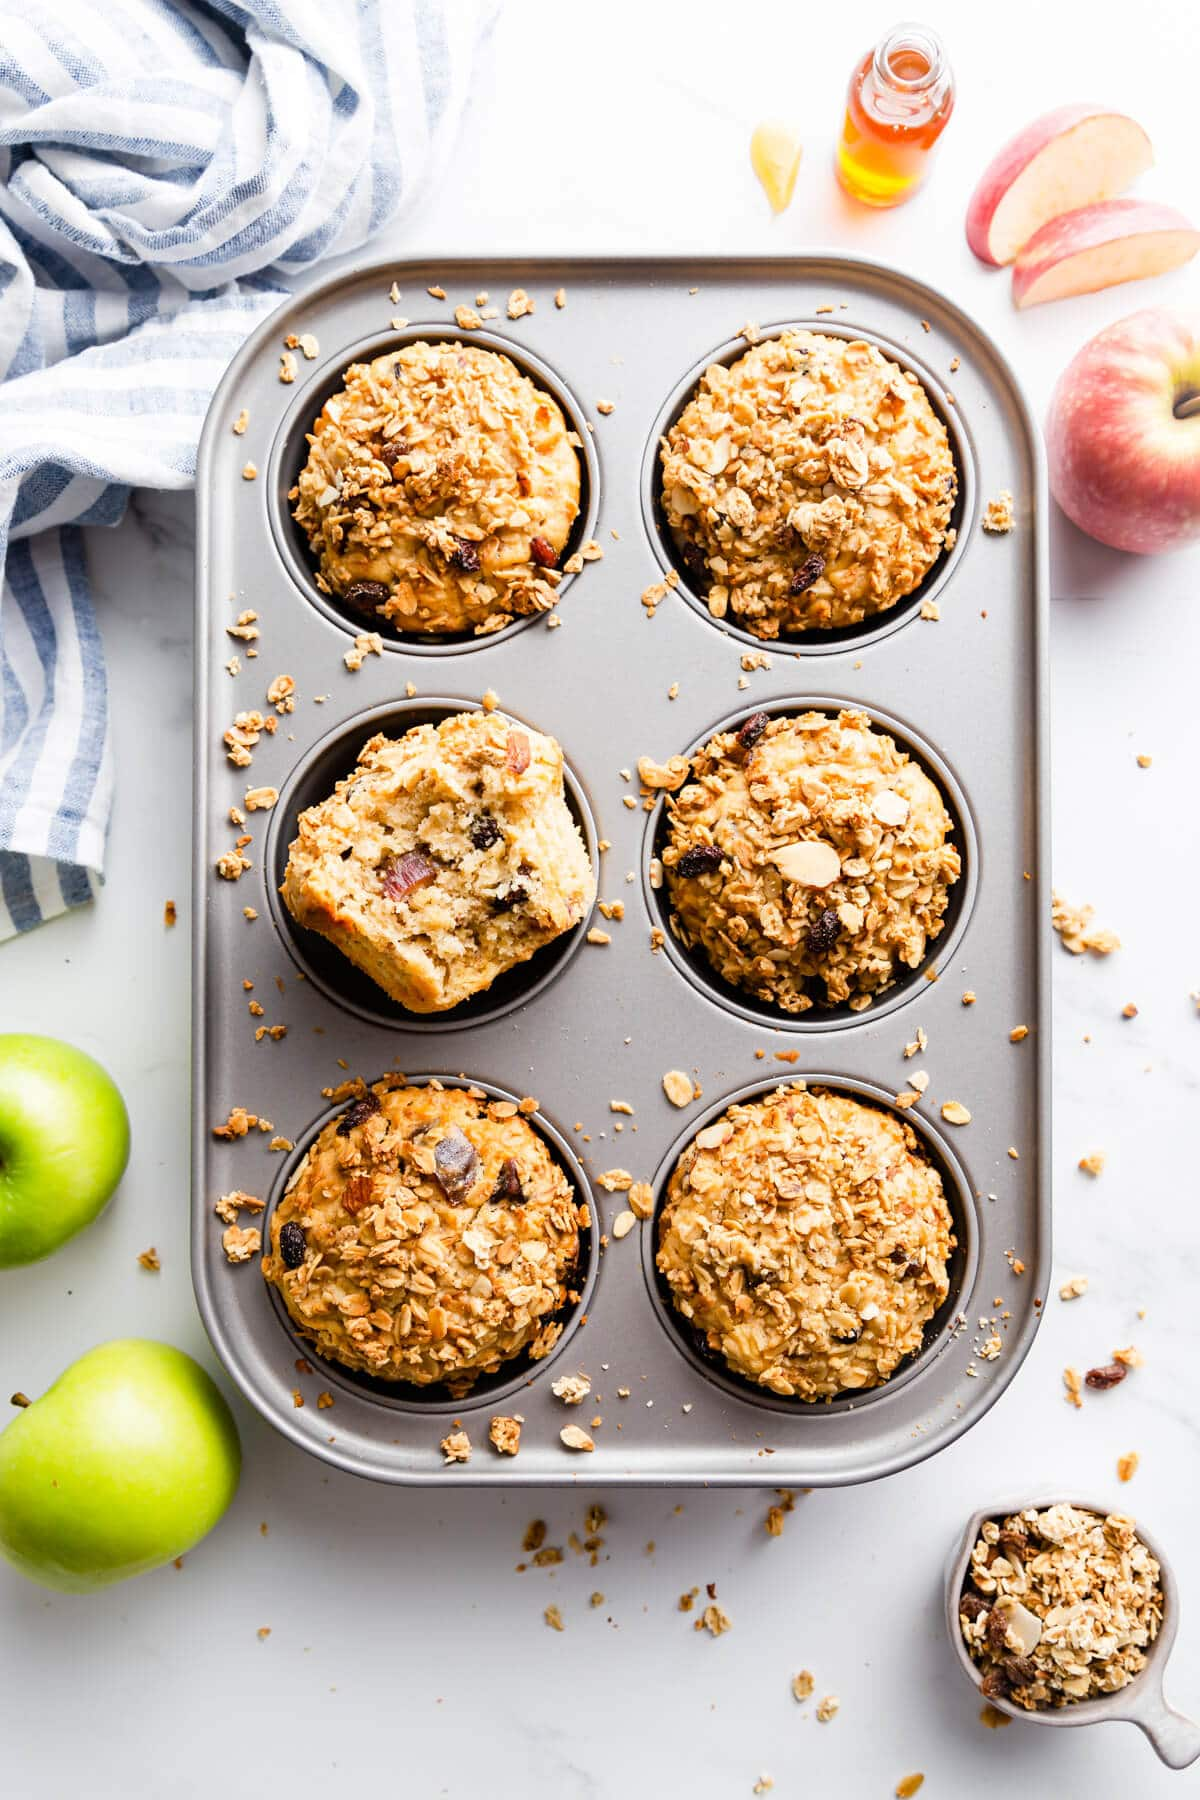 top view of baking tin with 6 apple and granola breakfast muffins inside